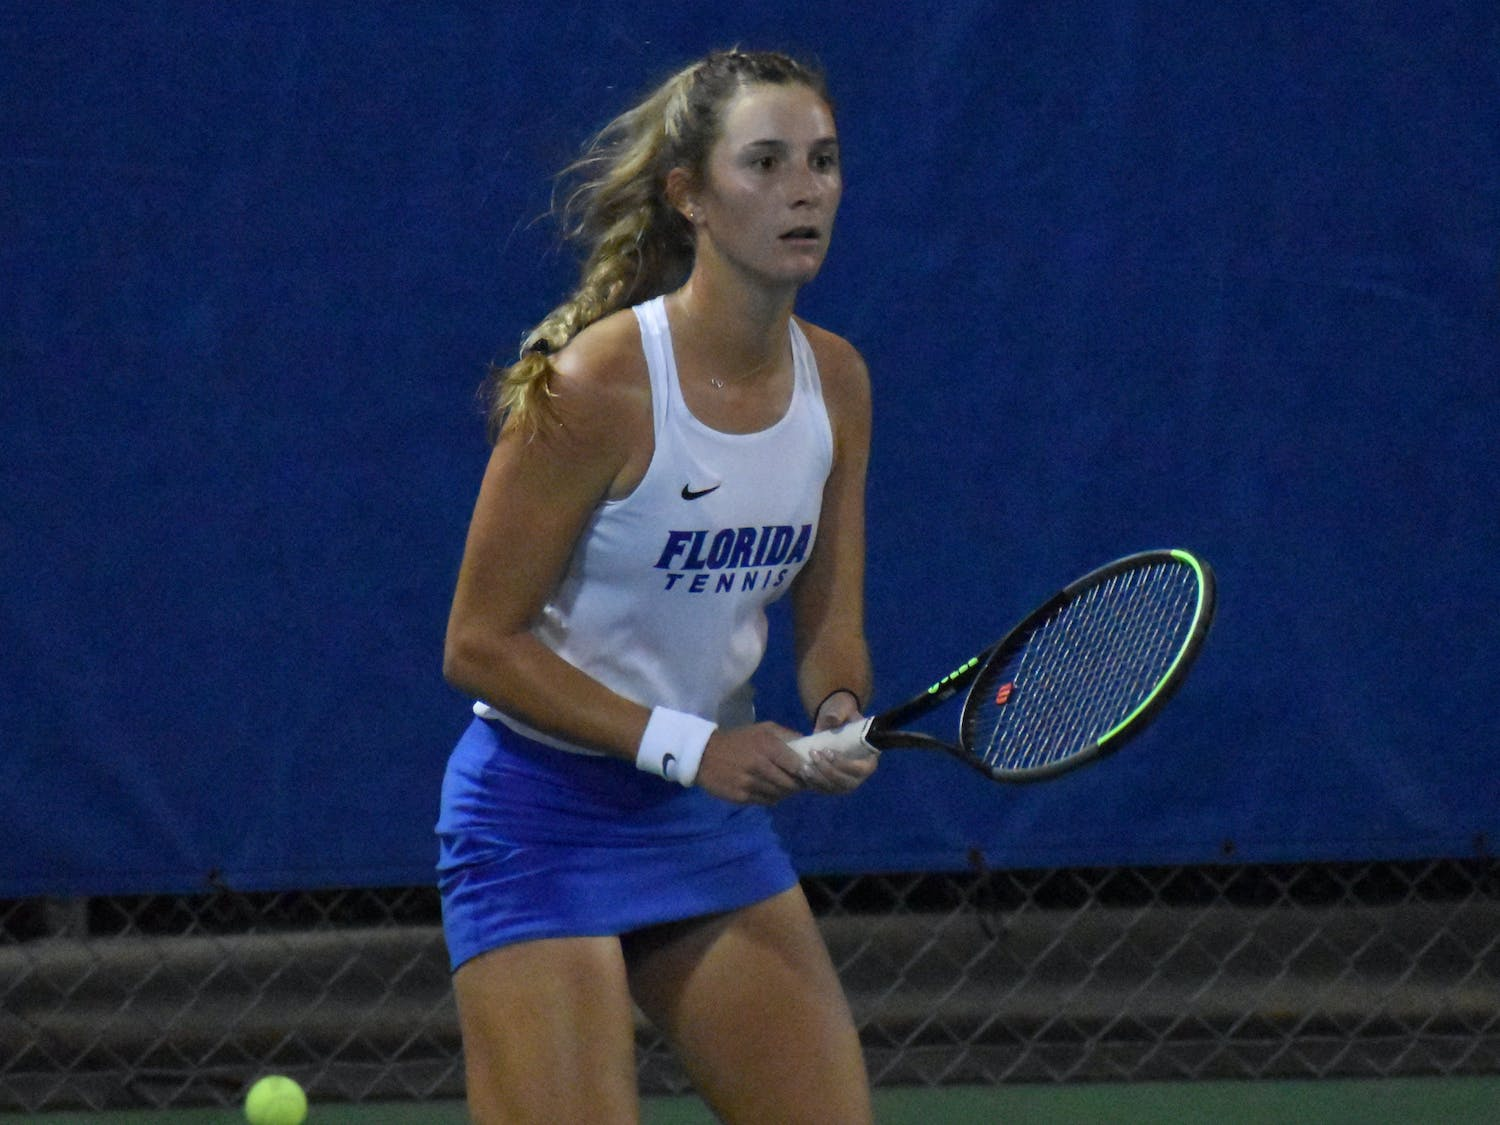 The Gators suffered two brutal losses to No. 22 UCF 4-3, 5-2 and No. 8 FSU 4-1.